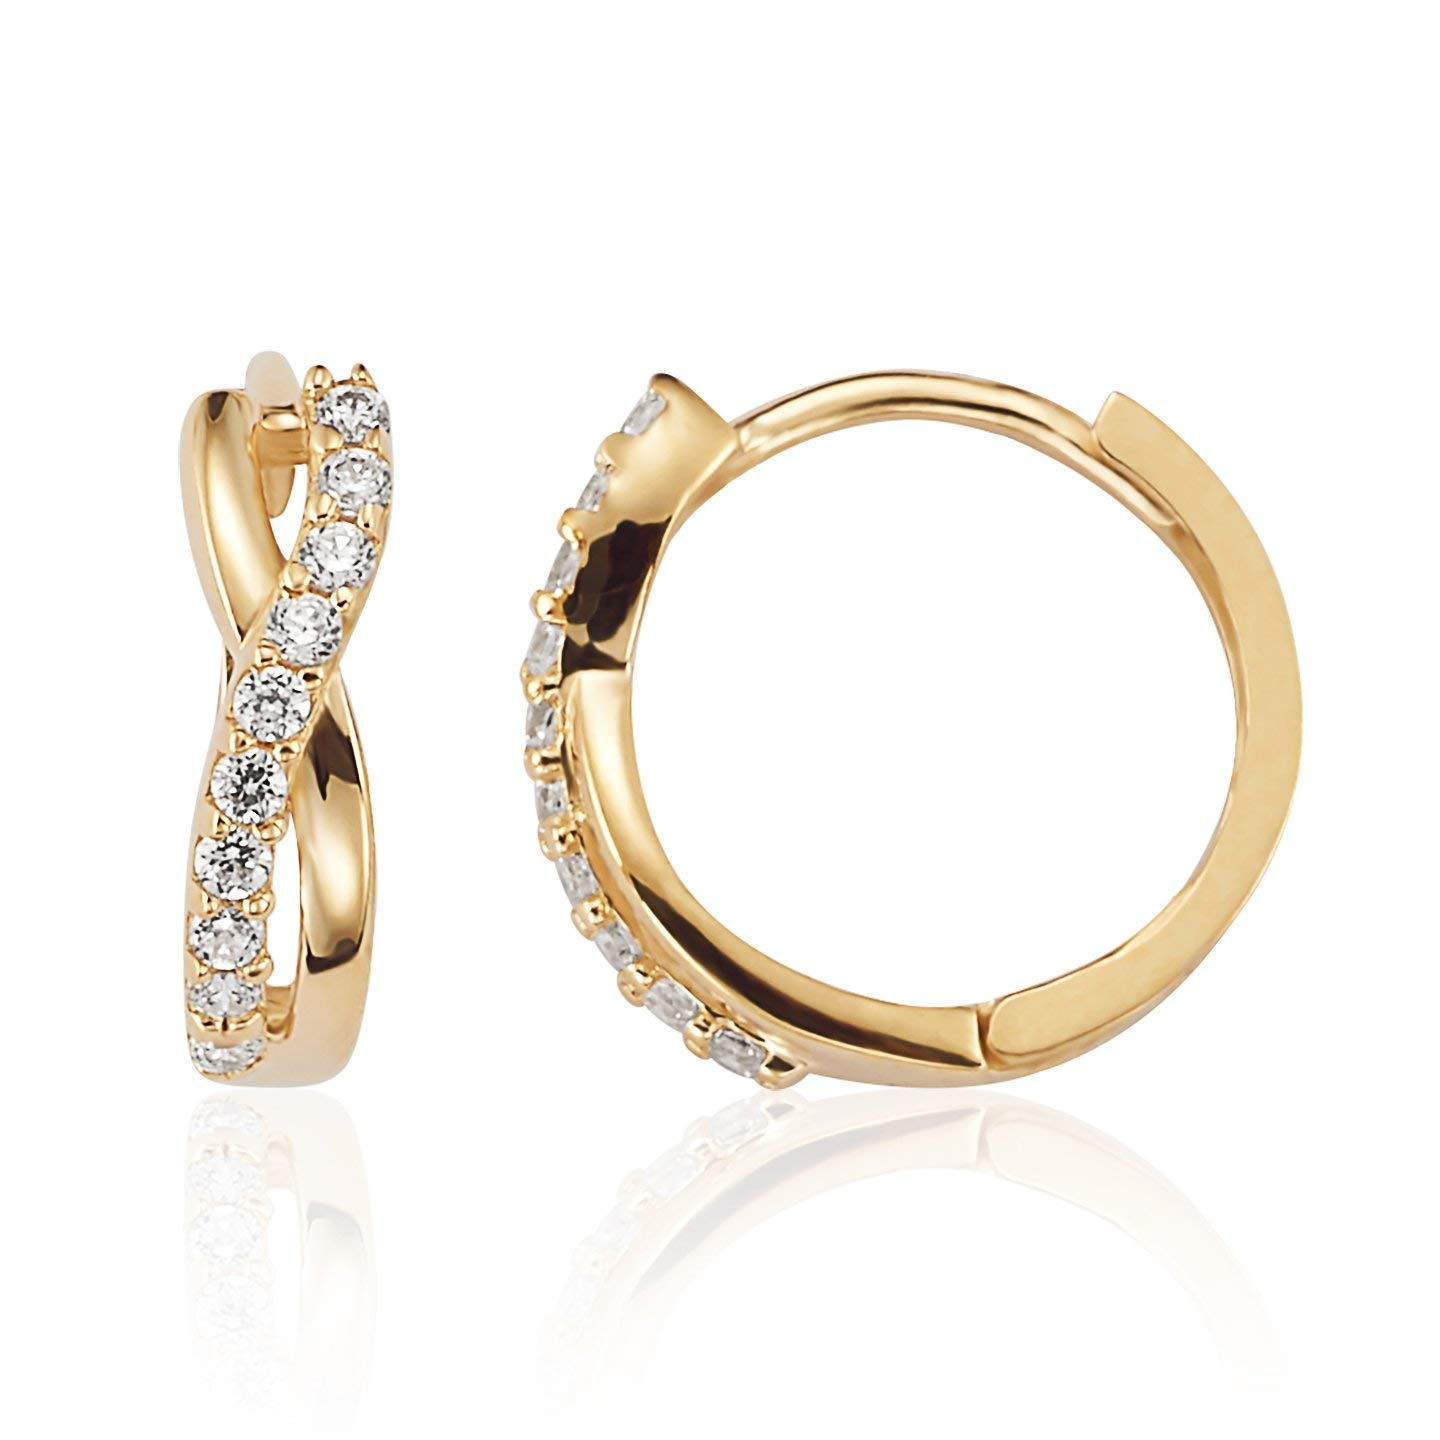 c4cc6029c Get Quotations · Solid and CZ Infinity Huggie Hoop Earrings in 14K Yellow  Gold